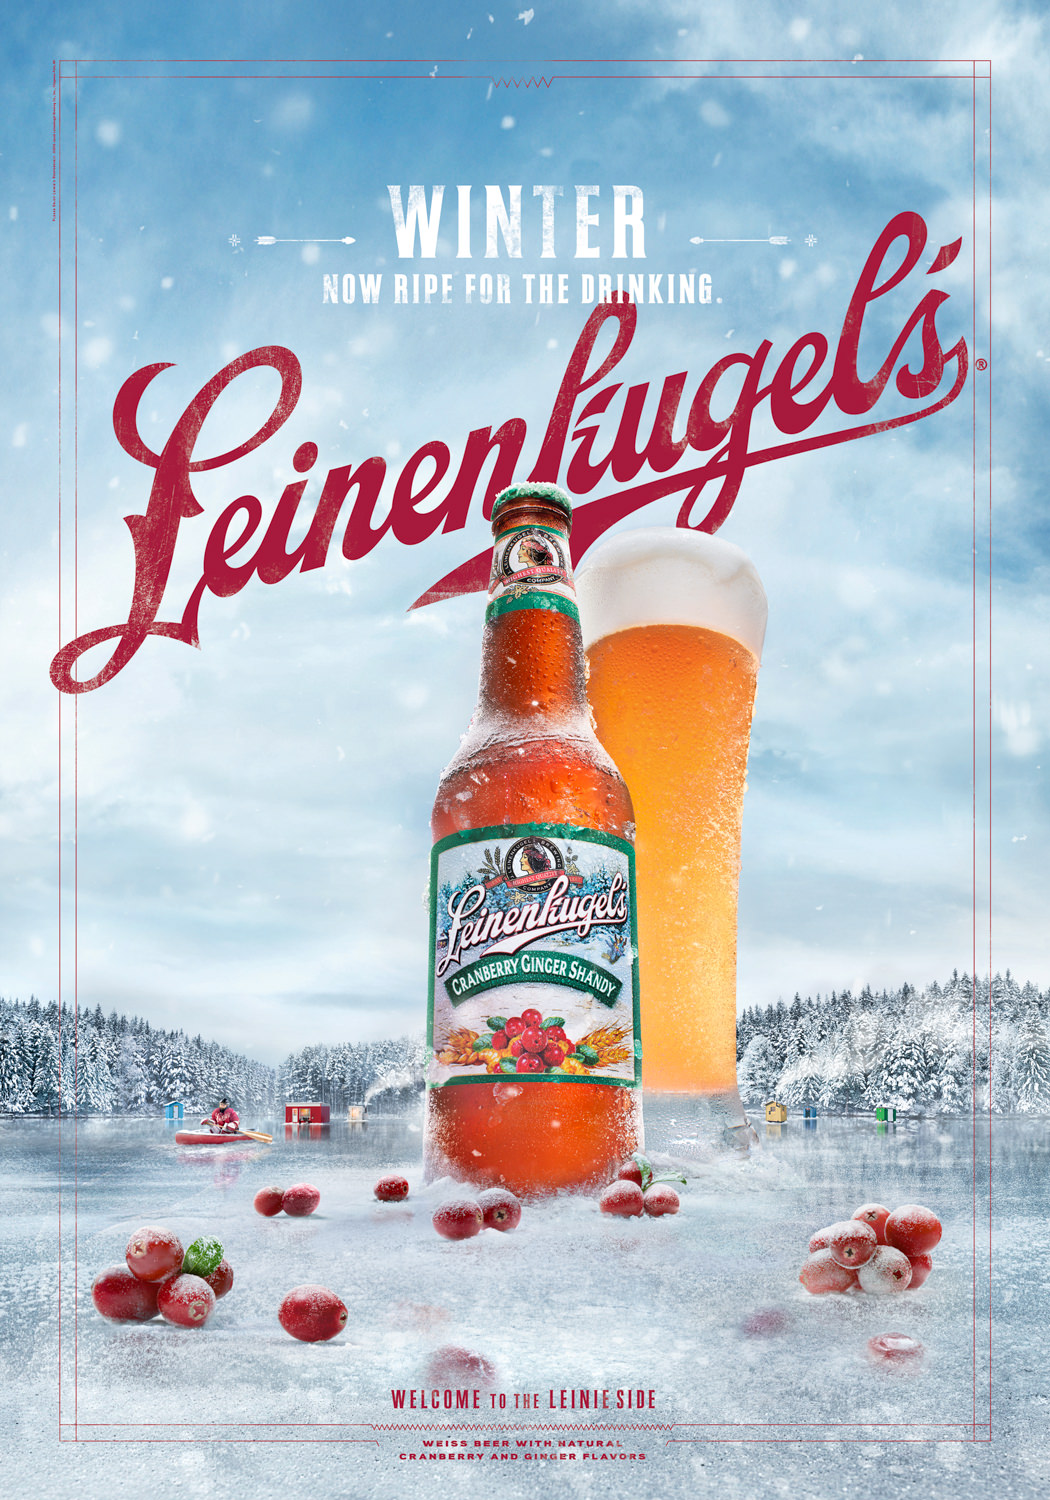 LEINENKUGEL-WINTER-STEPHEN-STEWART.jpg